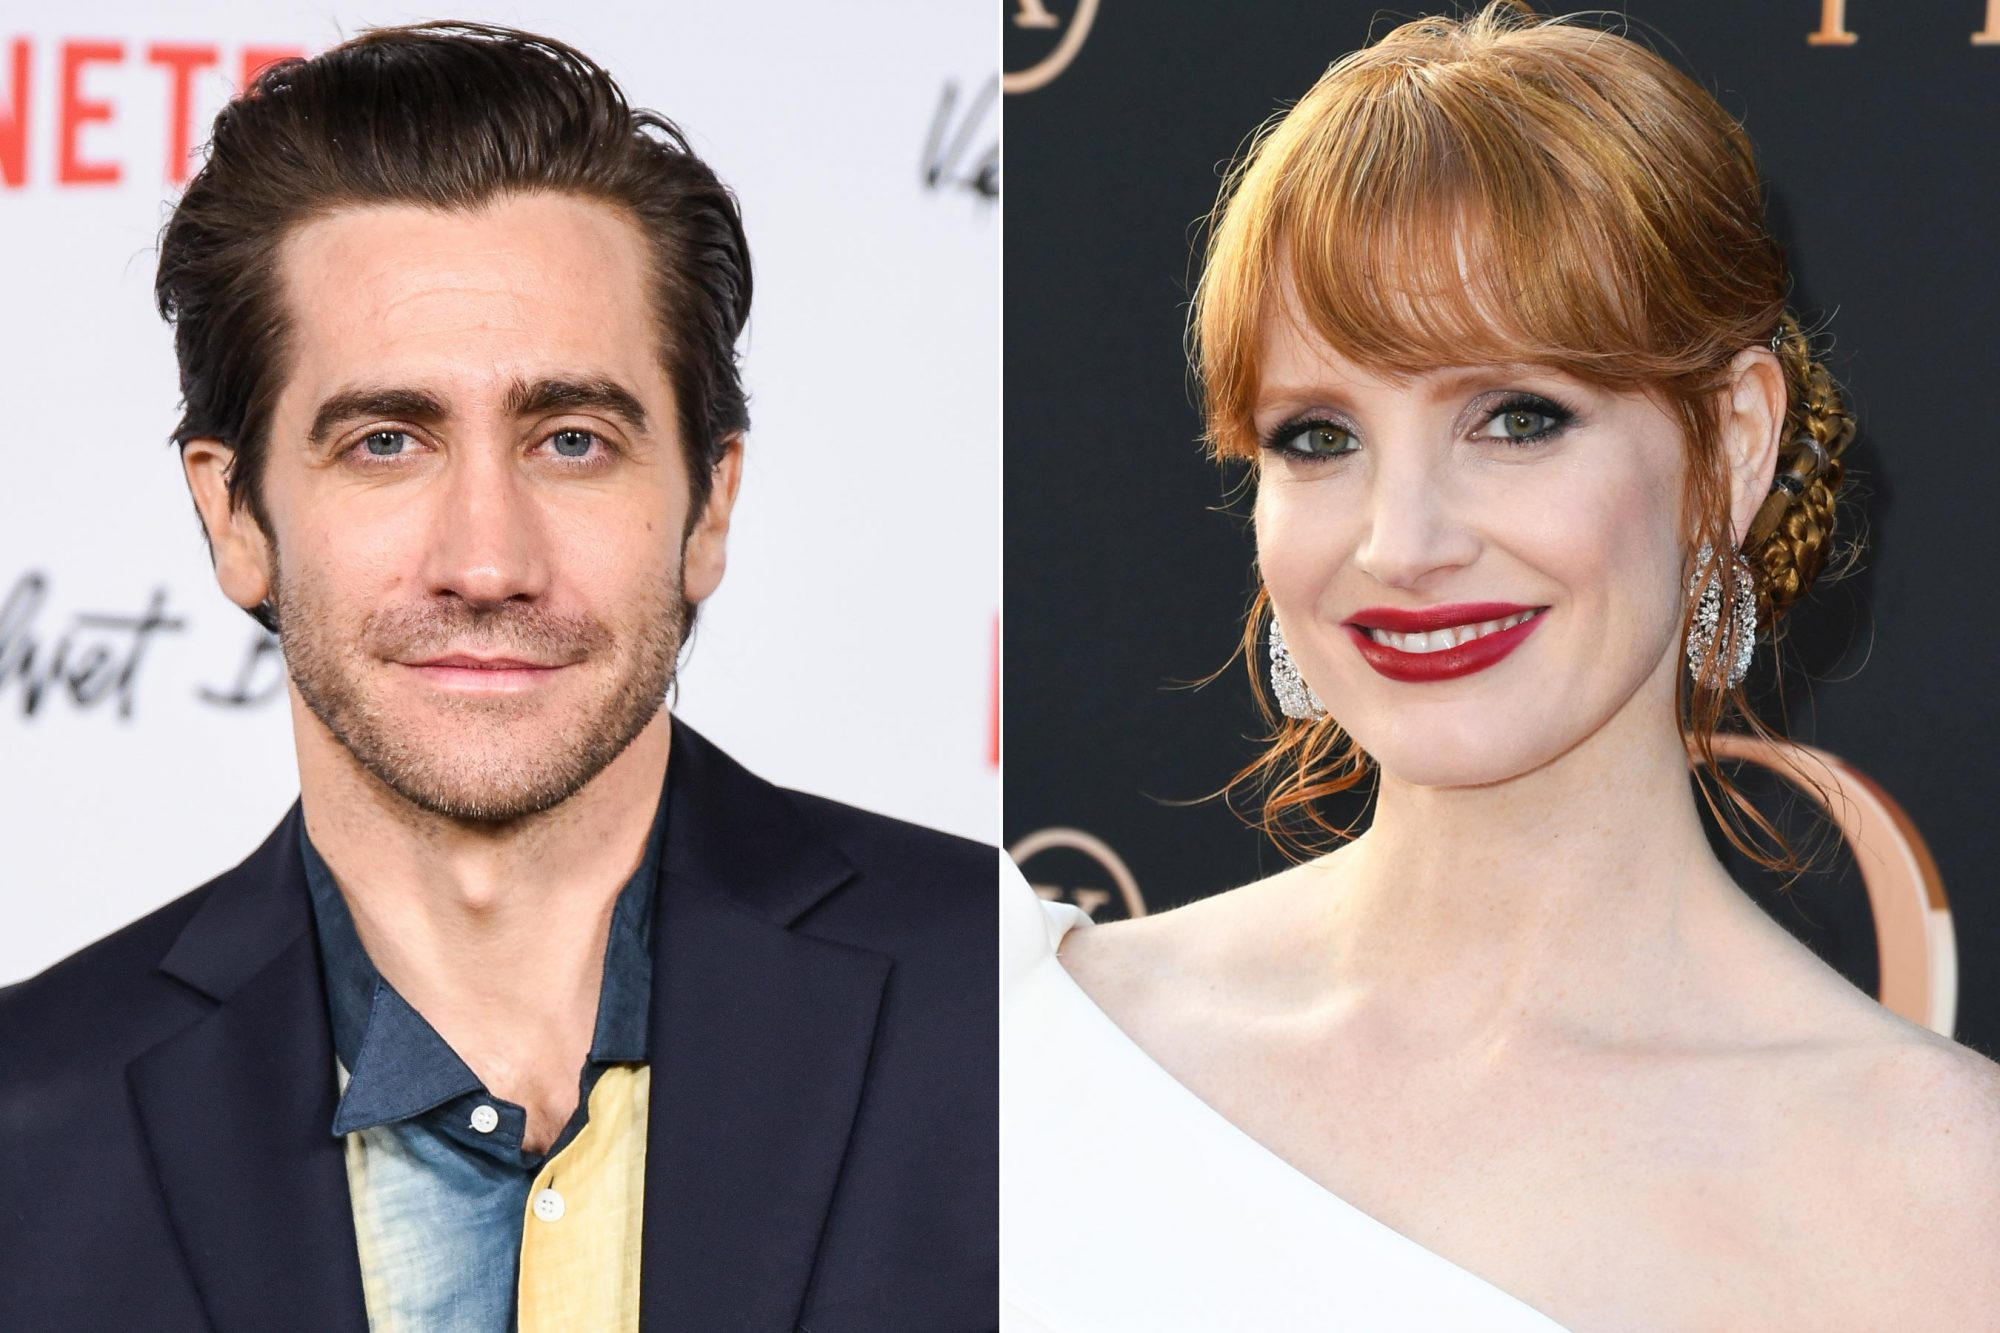 "HOLLYWOOD, CALIFORNIA - JANUARY 28: Jake Gyllenhaal attends Los Angeles Premiere Screening Of ""Velvet Buzzsaw"" at American Cinematheque's Egyptian Theatre on January 28, 2019 in Hollywood, California. (Photo by Presley Ann/FilmMagic,) HOLLYWOOD, CALIFORNIA - JUNE 04: Jessica Chastain attends the Premiere Of 20th Century Fox's ""Dark Phoenix"" at TCL Chinese Theatre on June 04, 2019 in Hollywood, California. (Photo by Jon Kopaloff/FilmMagic)"